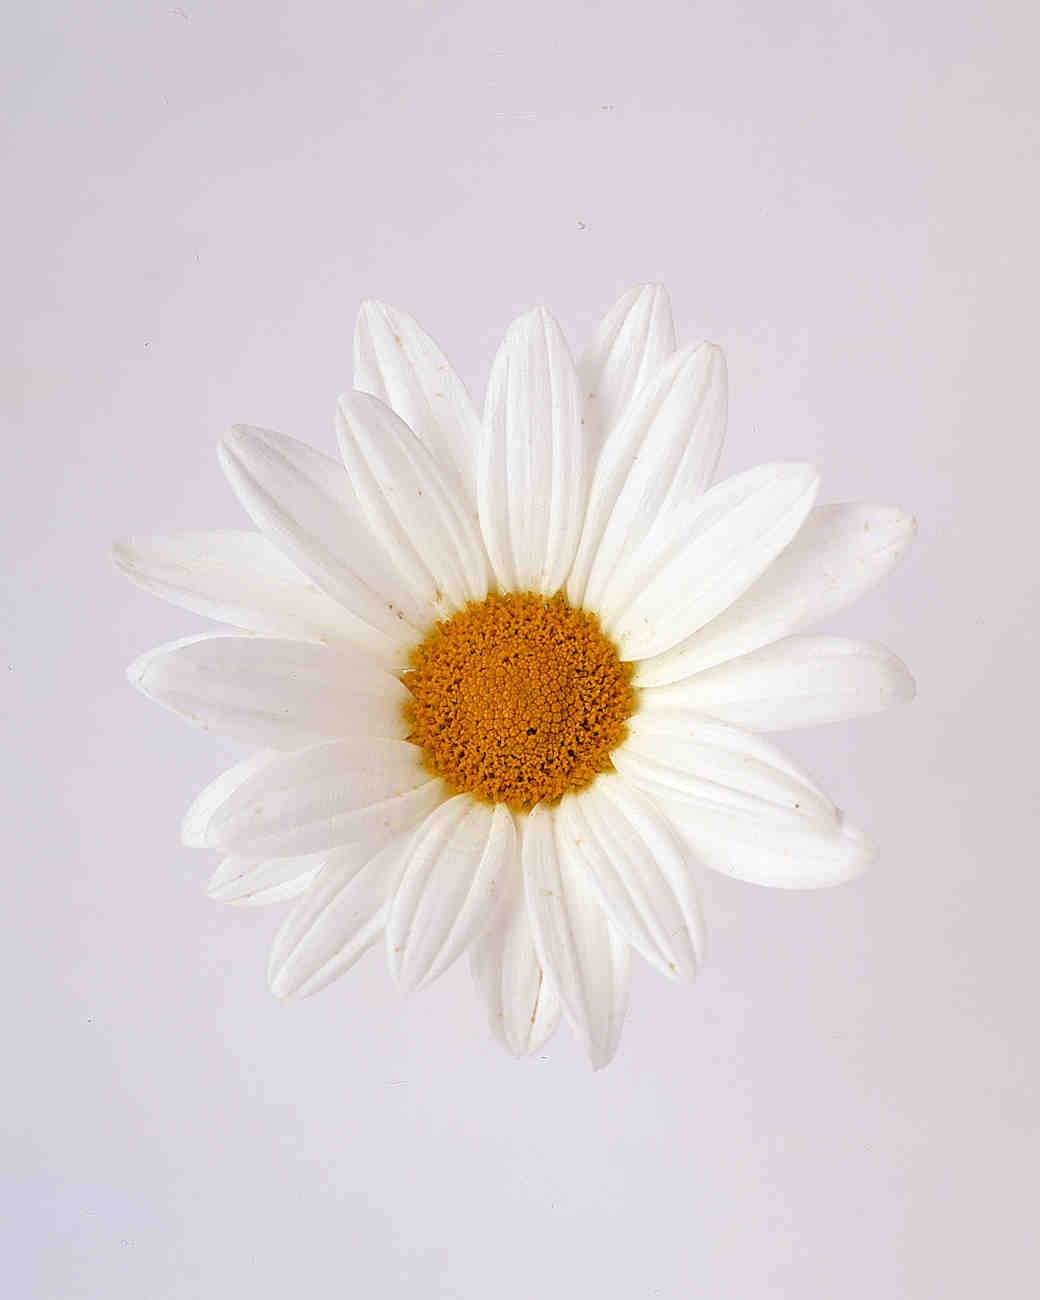 Marguerite flower meaning daisy meaning share your feelings best marguerite flower meaning izmirmasajfo Image collections